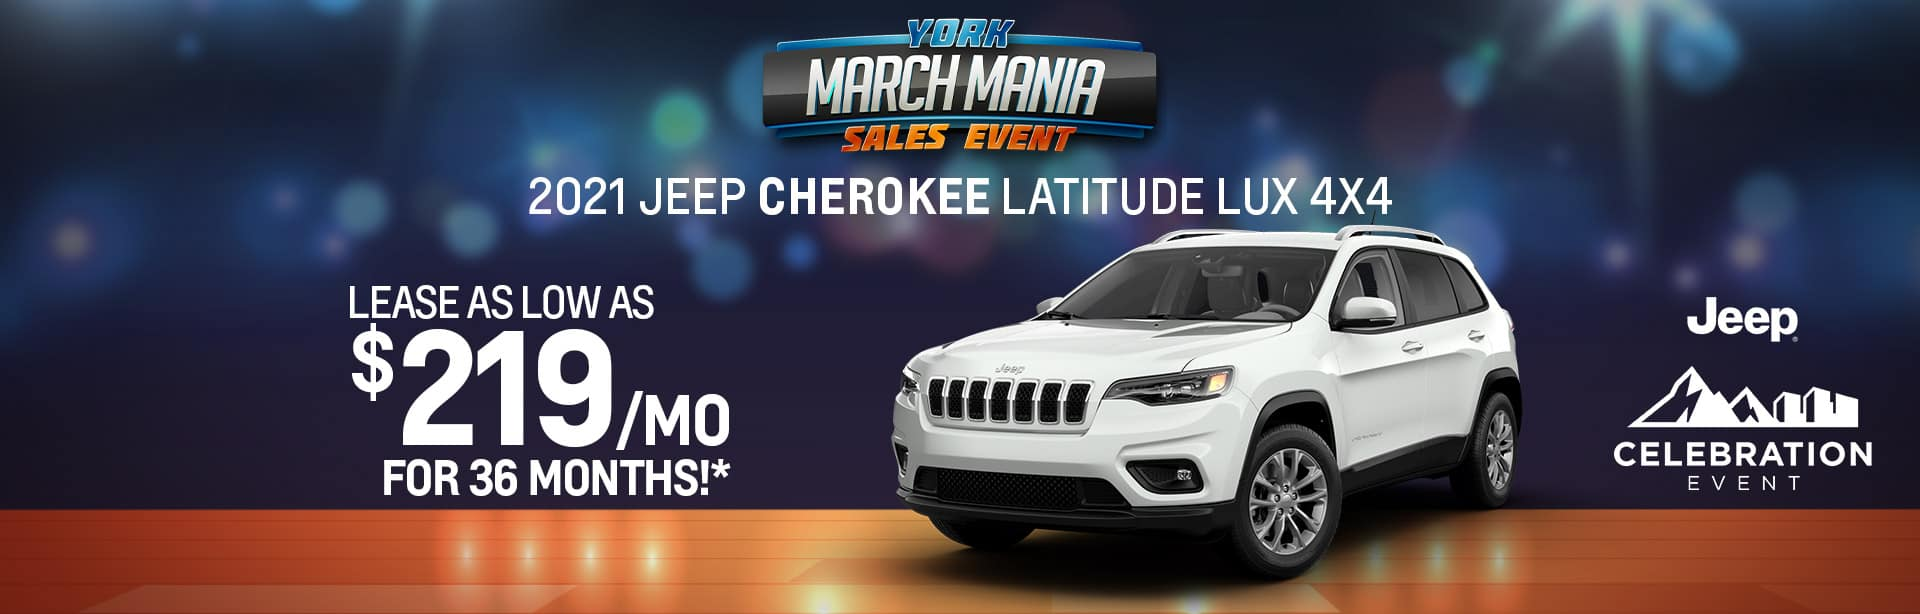 2021 Jeep Cherokee Lease offer near Indianapolis IN